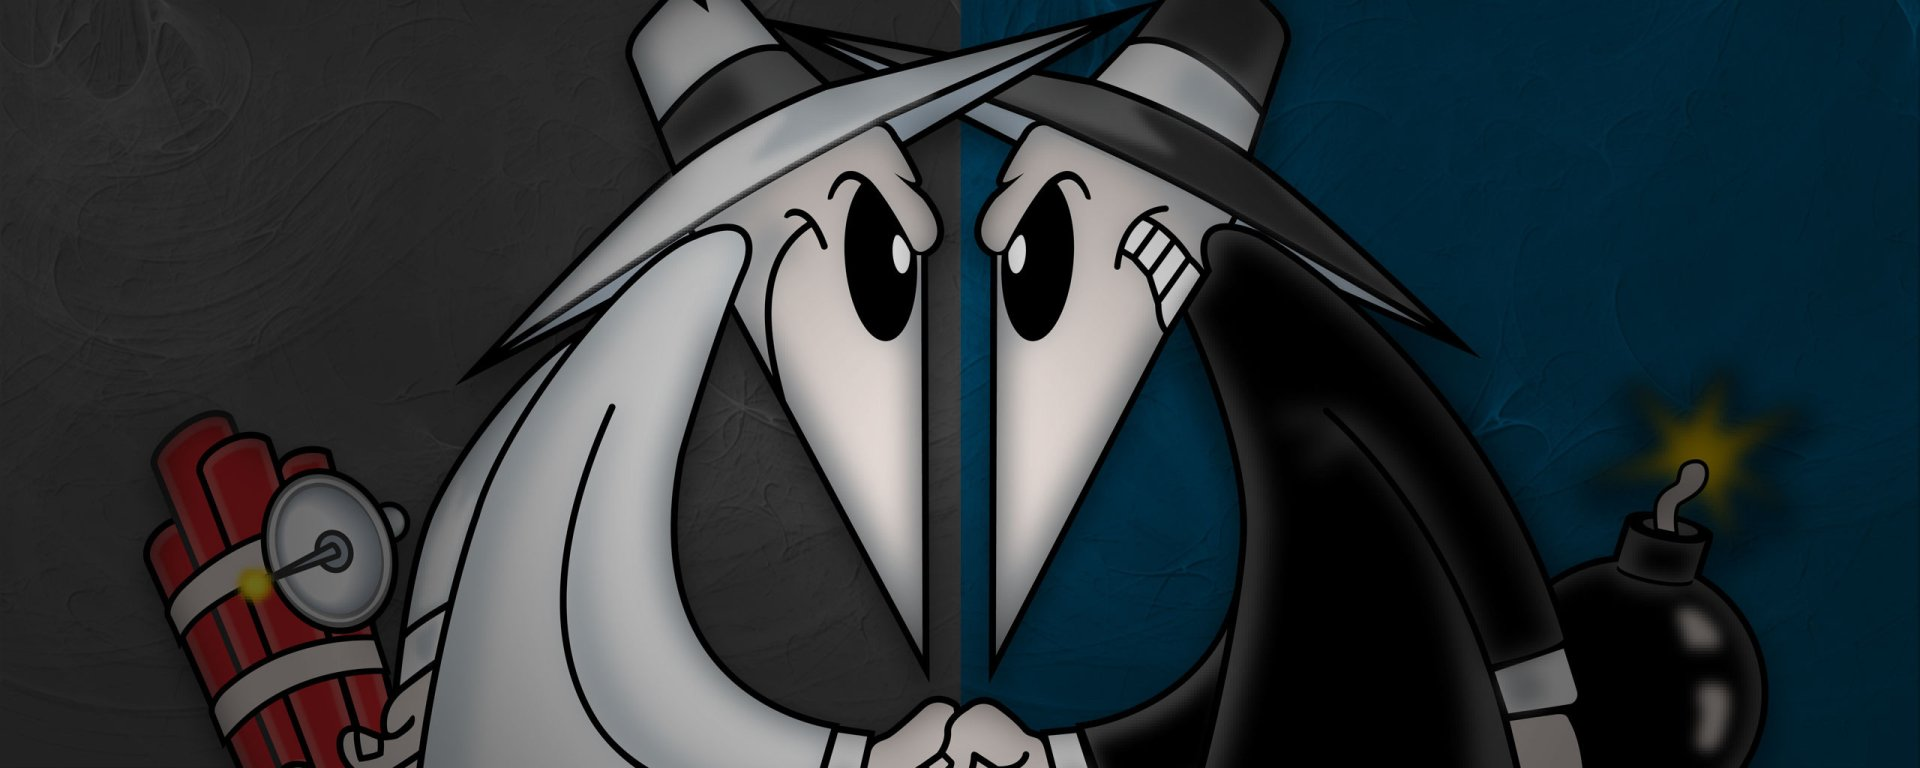 6 Spy Vs Spy Hd Wallpapers Background Images Wallpaper Abyss